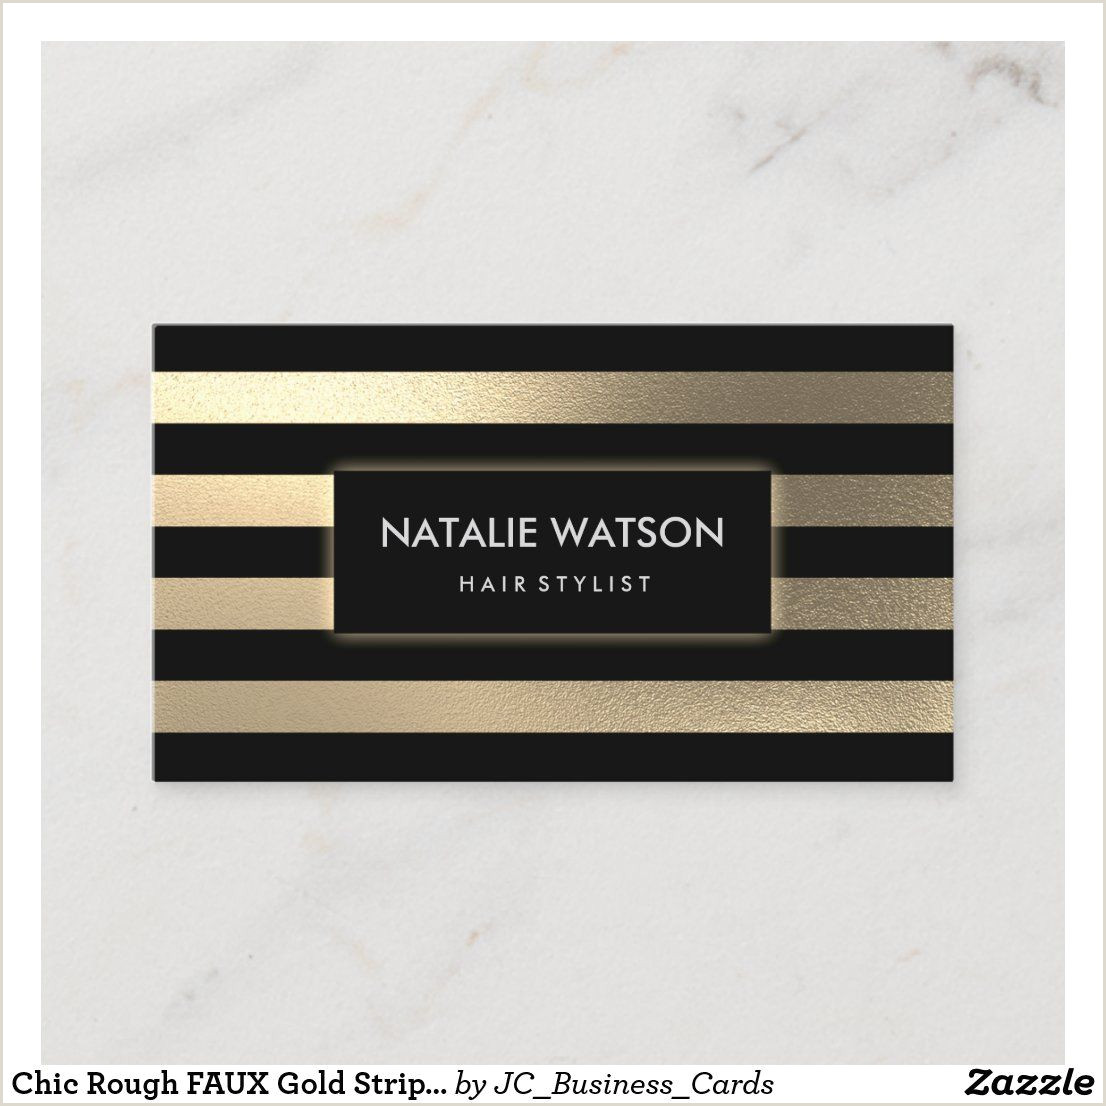 Best Business Cards 20209 288 Best Business Cards 2020 Images In 2020